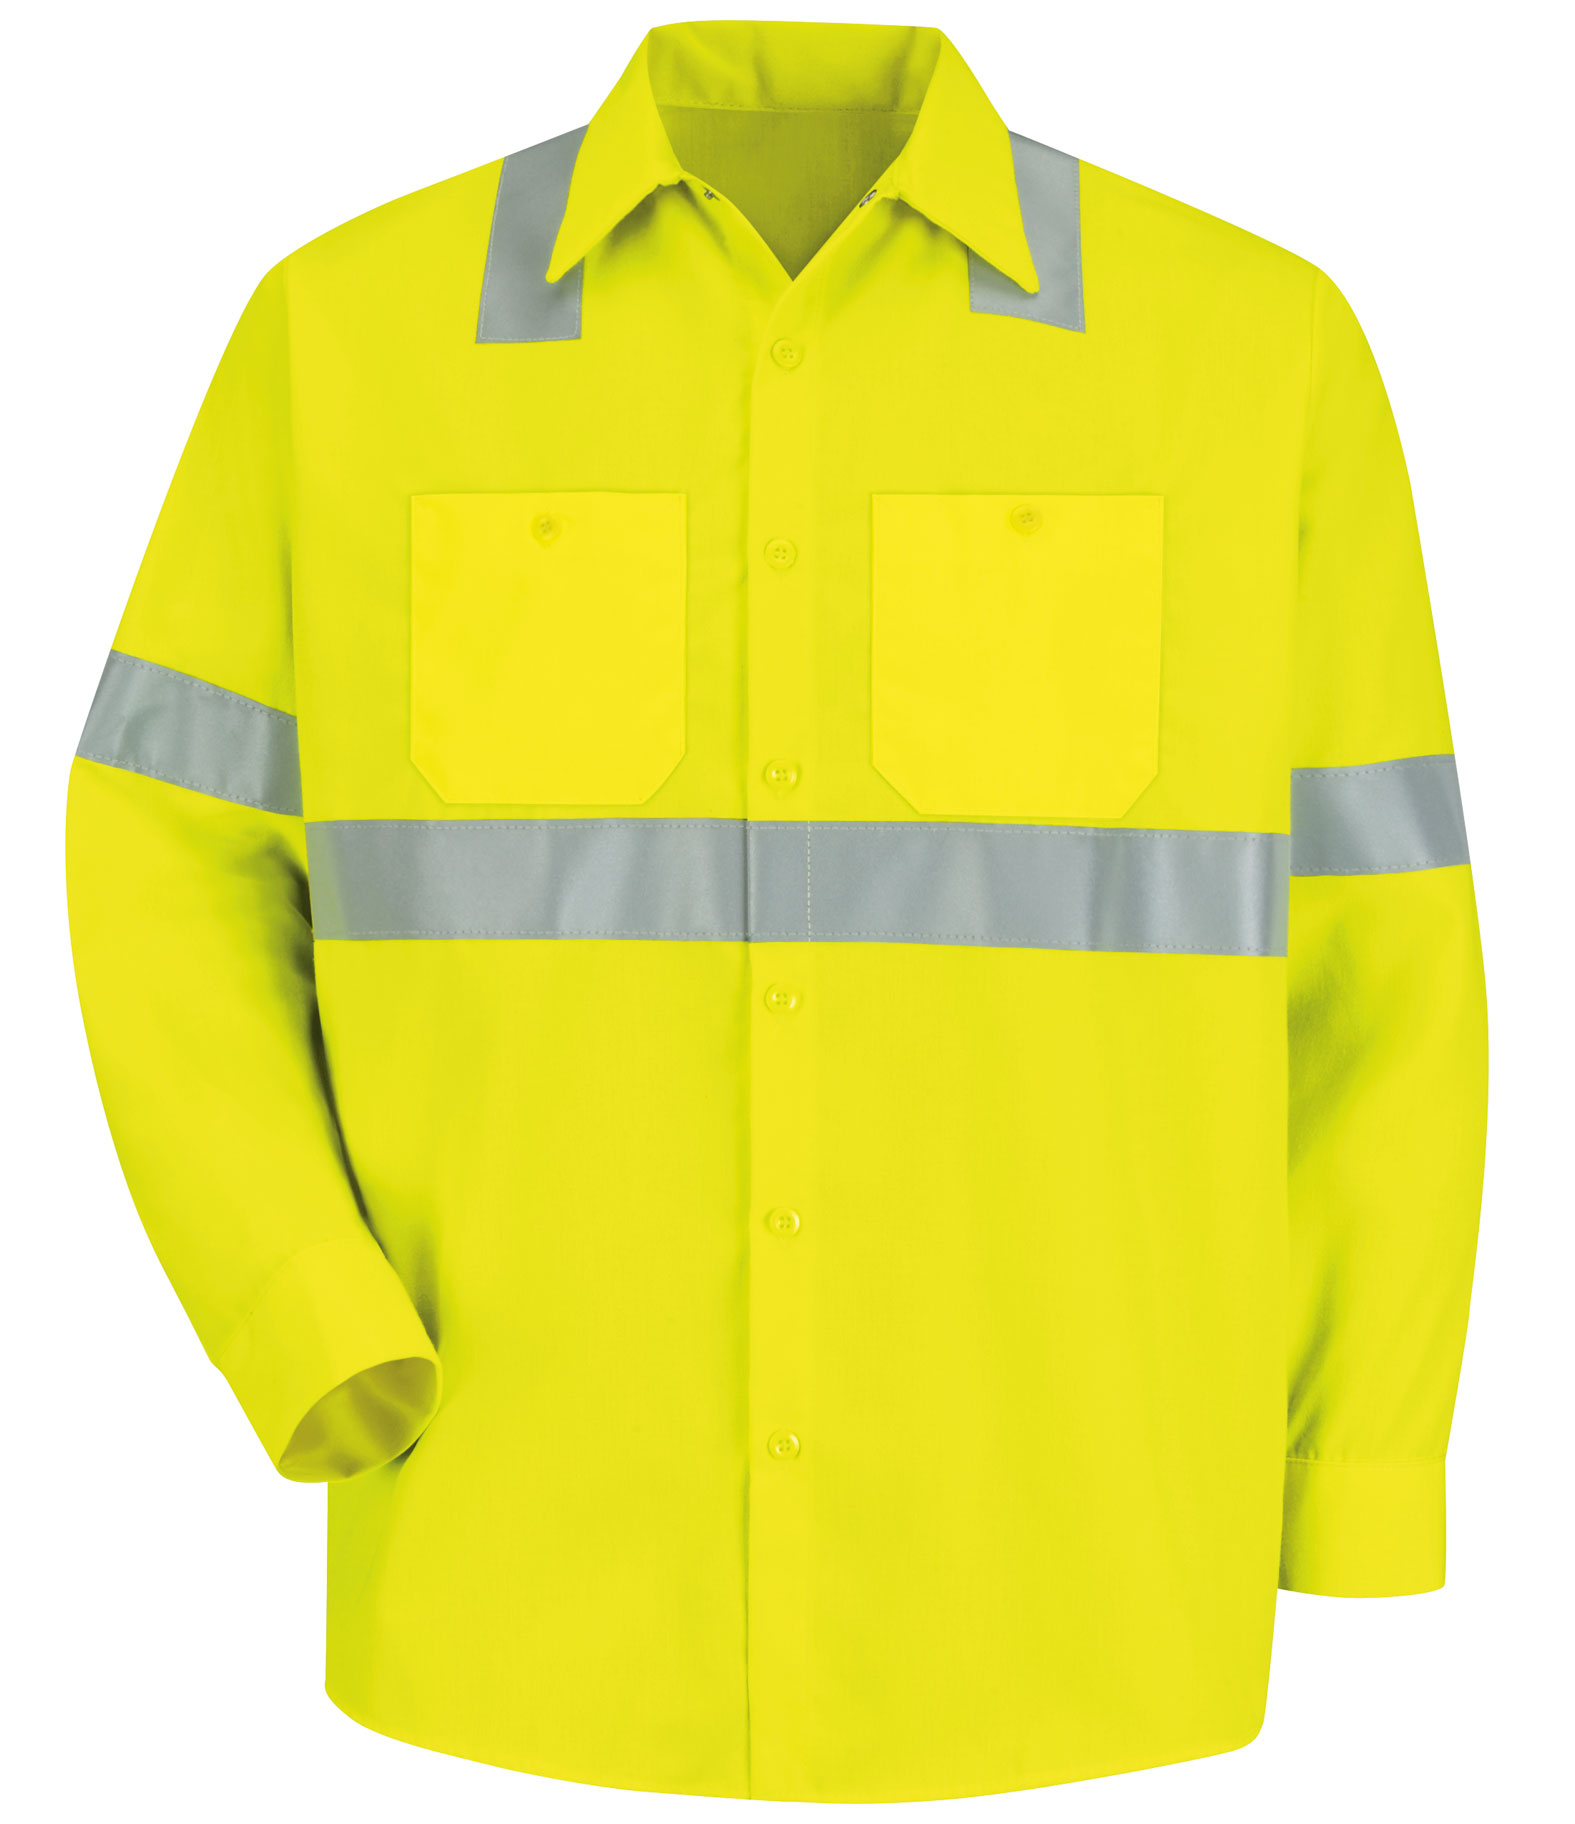 Red Kap Long-Sleeve Hi-Vis Shirt with Reflective Striping